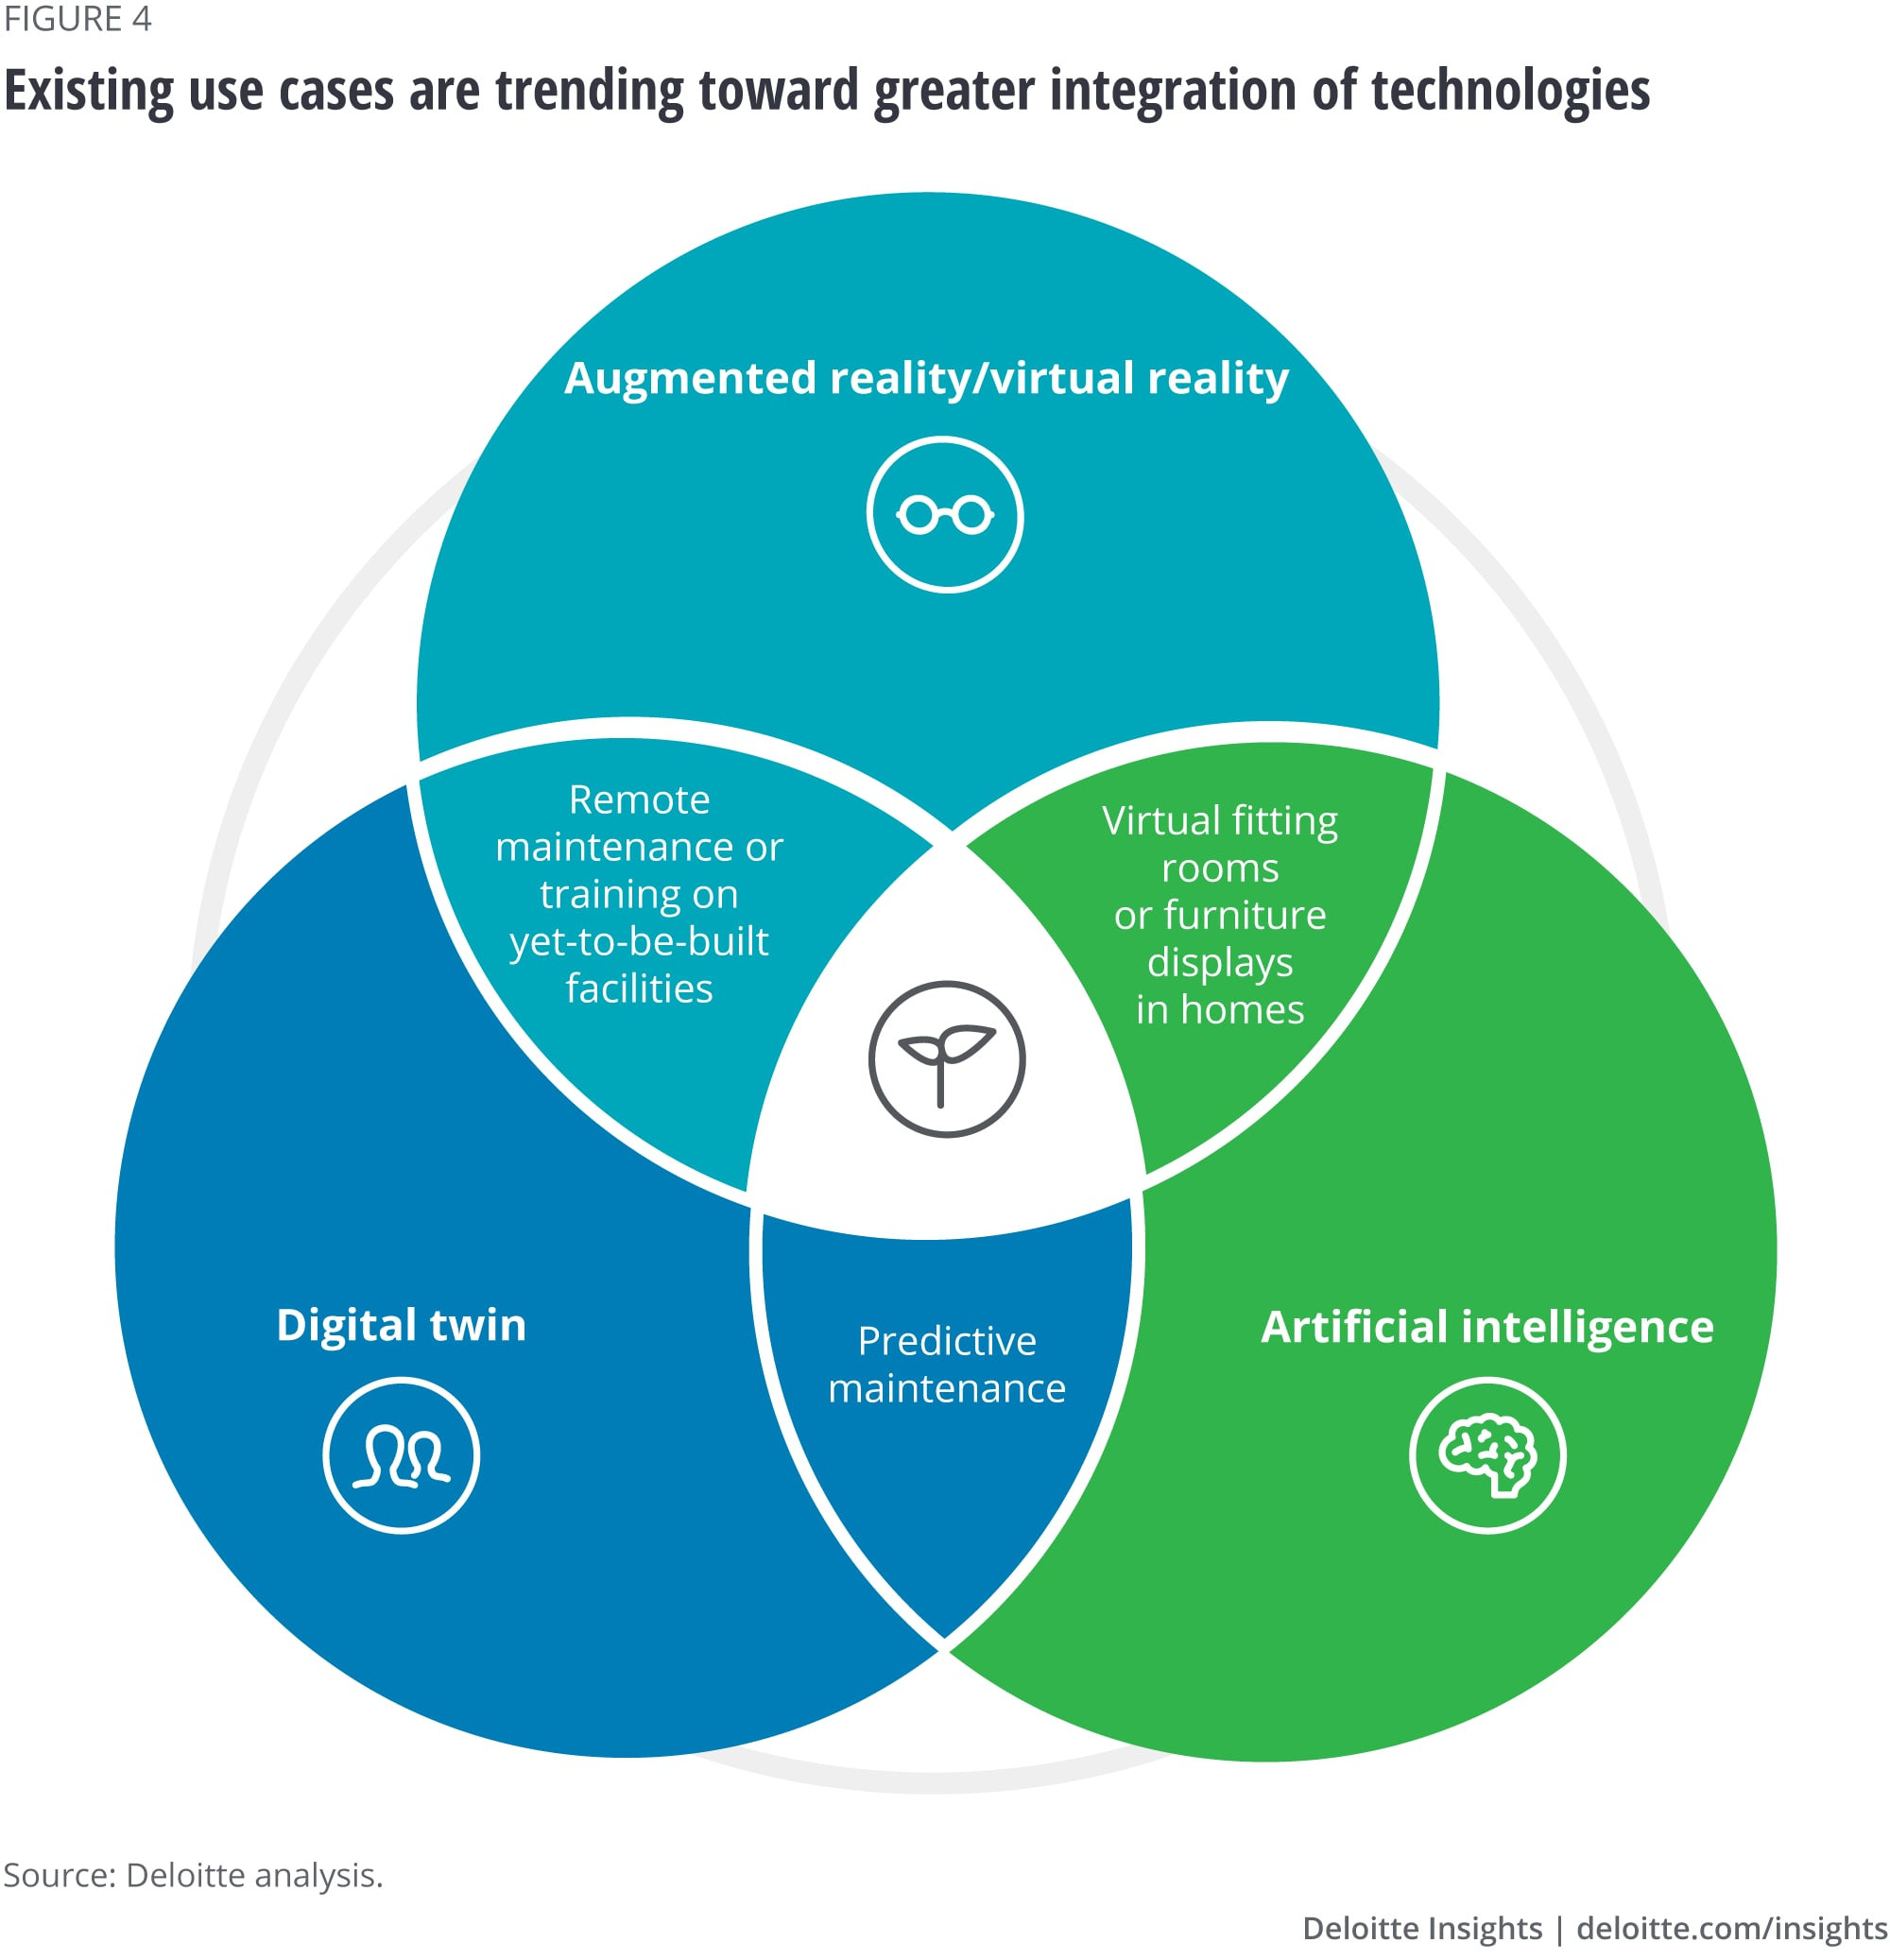 Existing use cases are trending toward greater integration of technologies